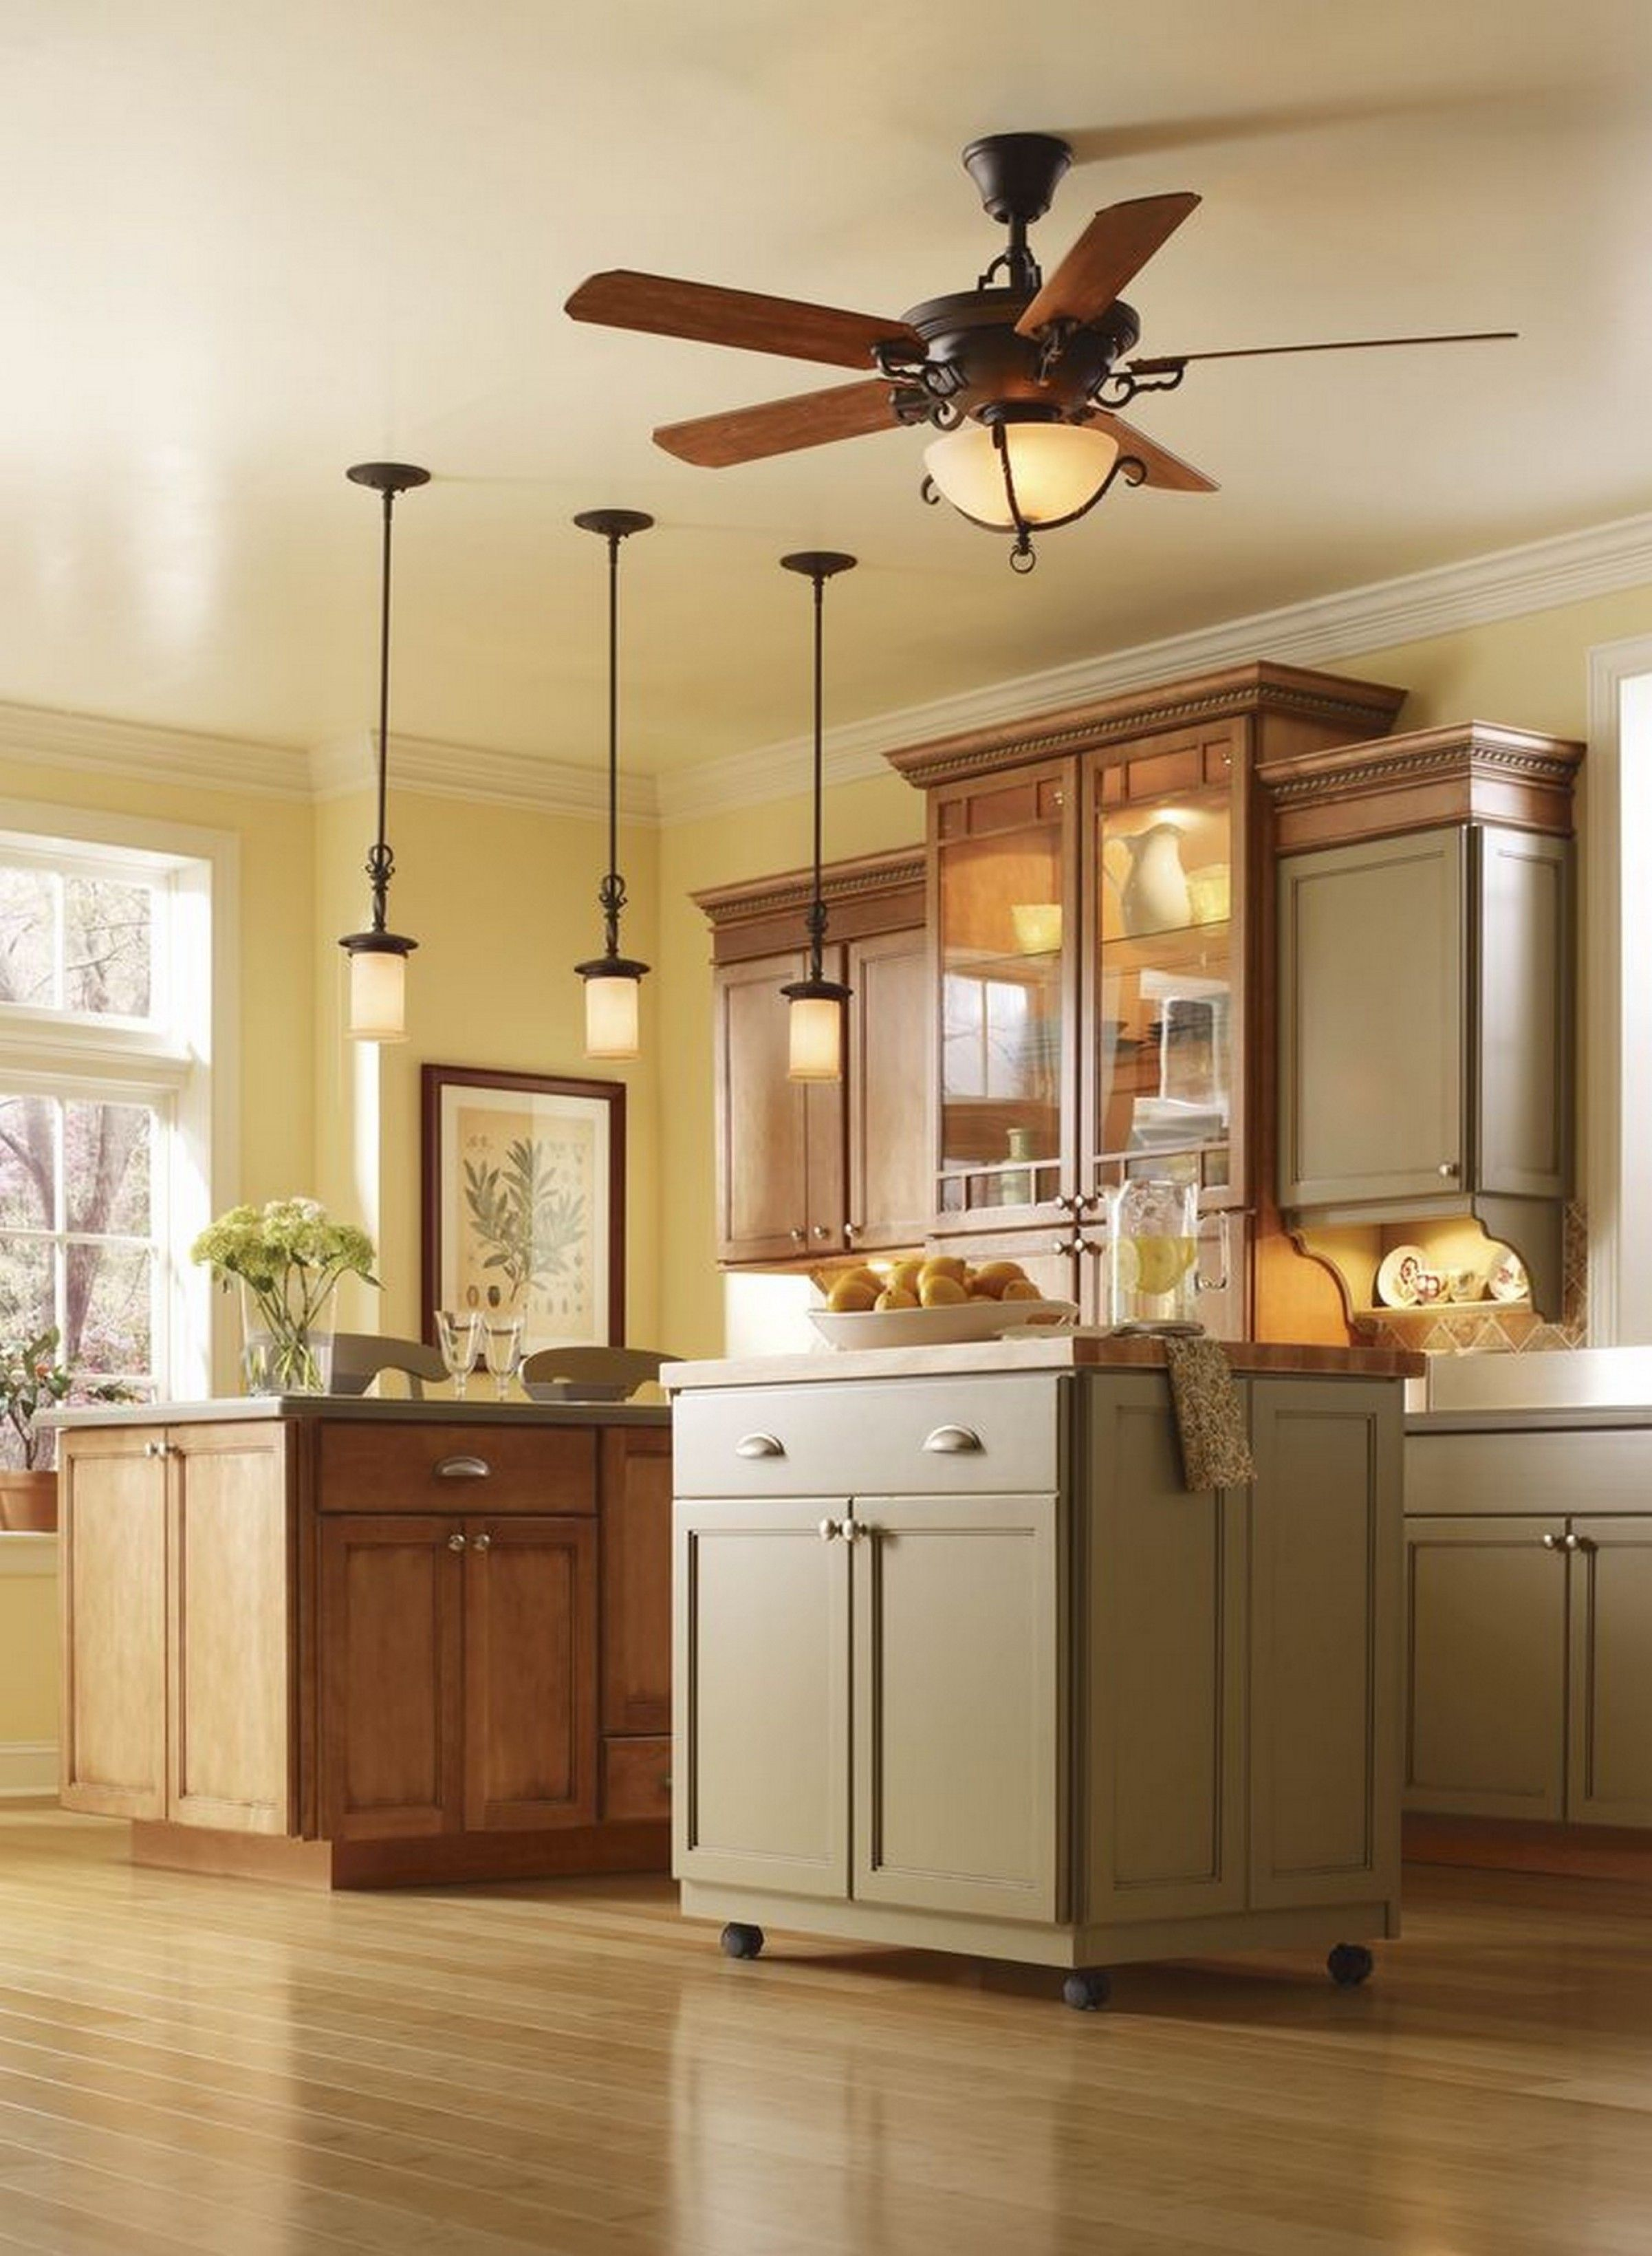 Pictures Of Kitchens Traditional Light Wood Kitchen Cabinets Ceiling Fan In Kitchen Kitchen Ceiling Light Wood Kitchens